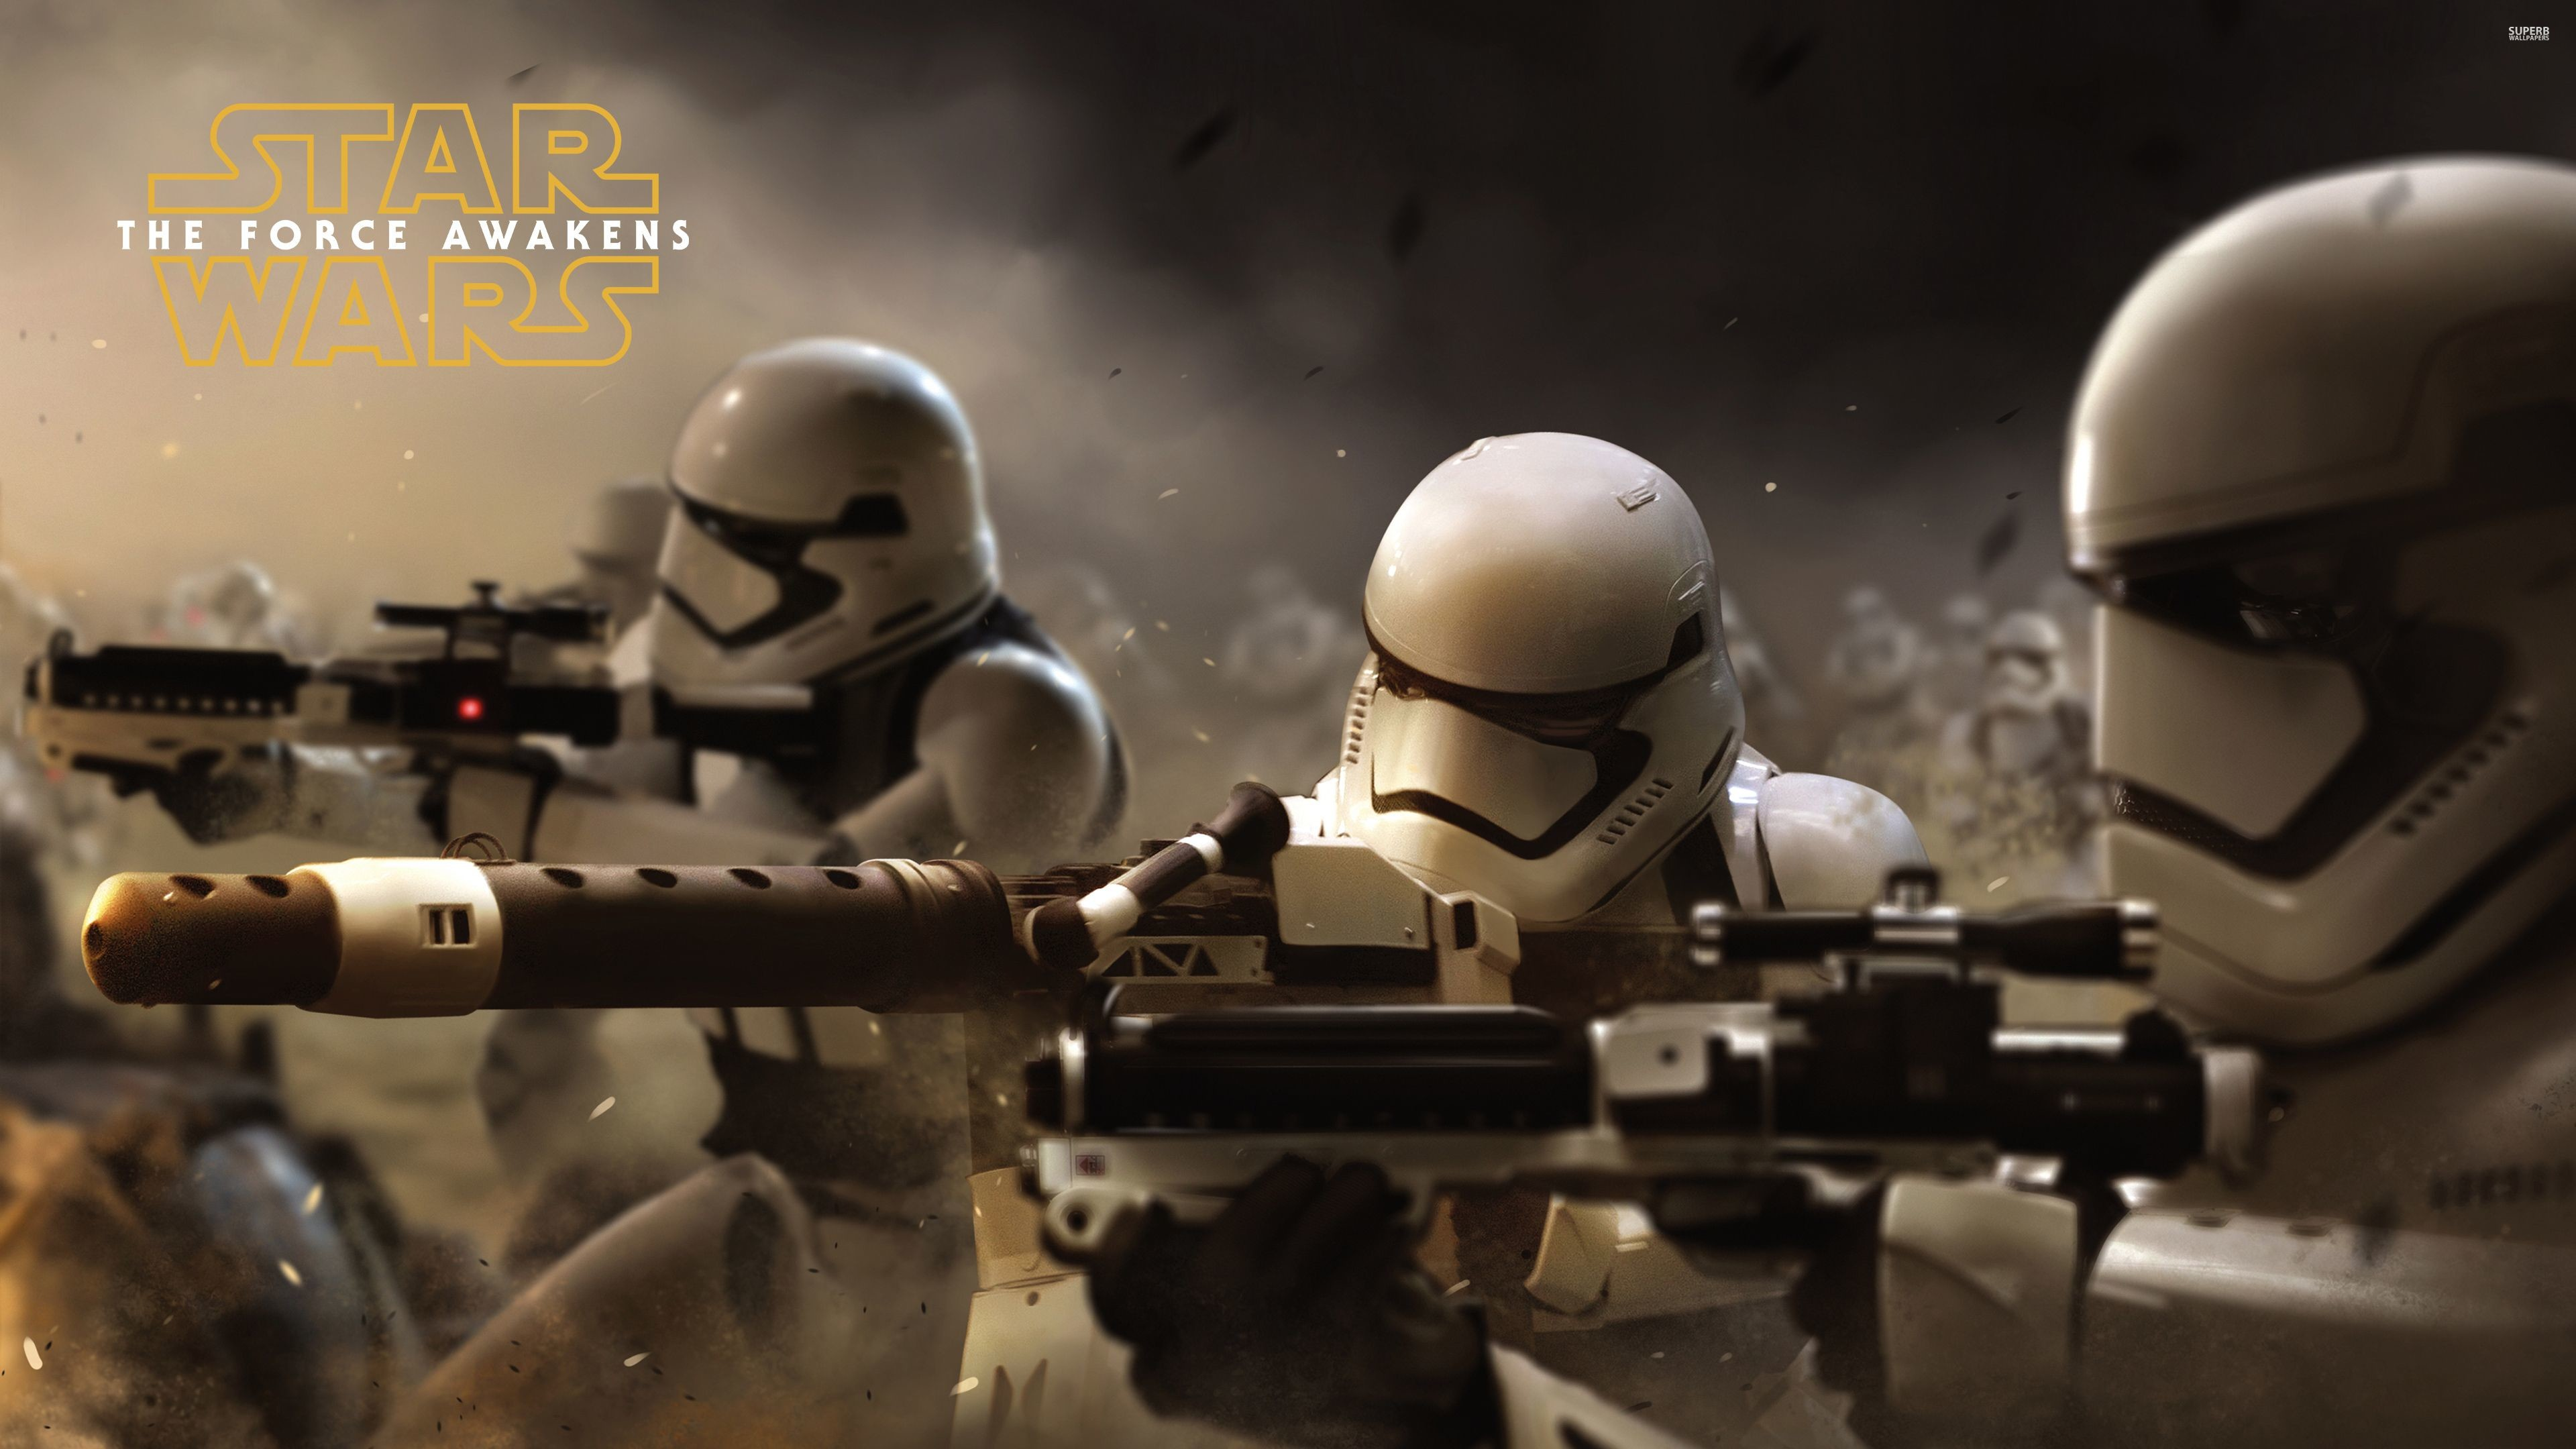 stormtroopers-in-star-wars-the-force-awakens-51525-